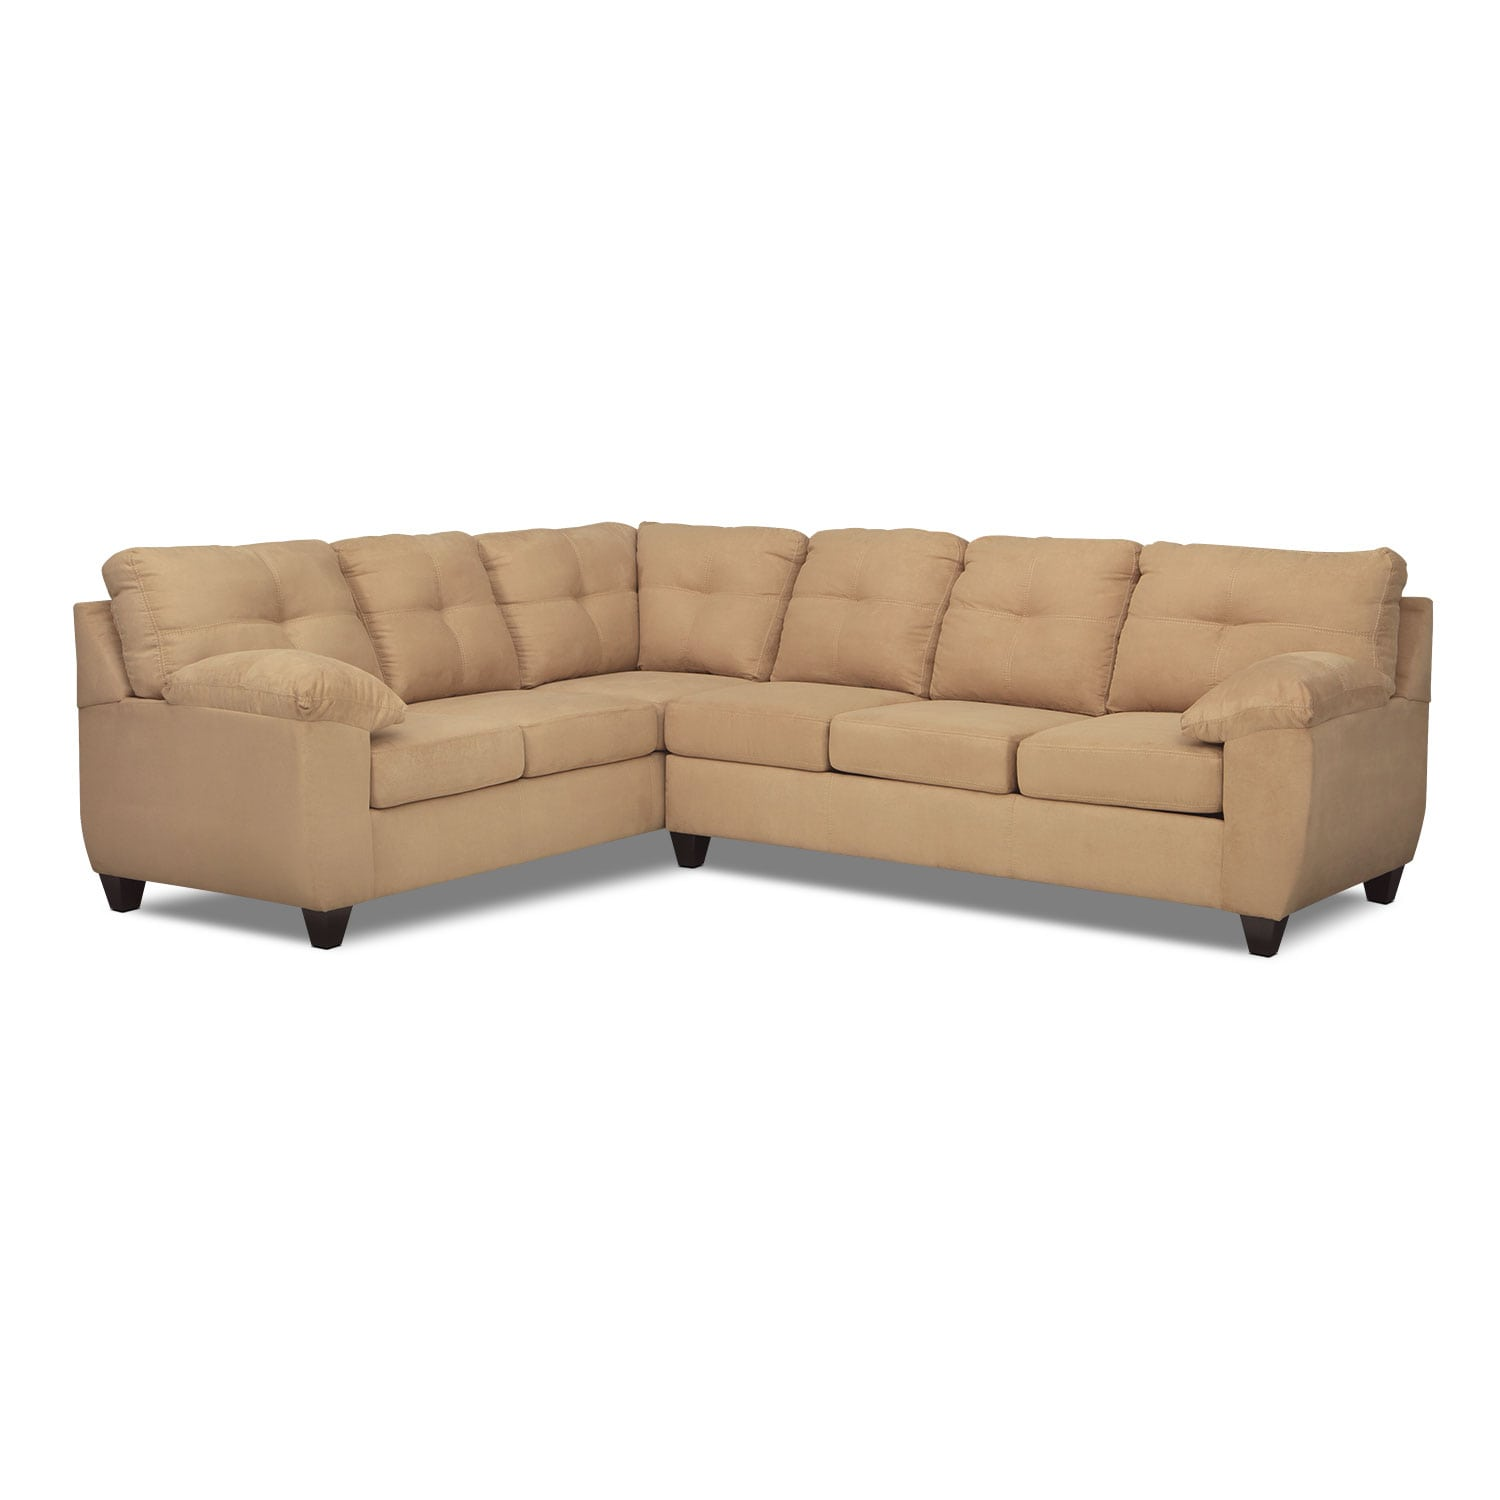 Rialto 2-Piece Sectional with Left-Facing Corner Sofa - Camel